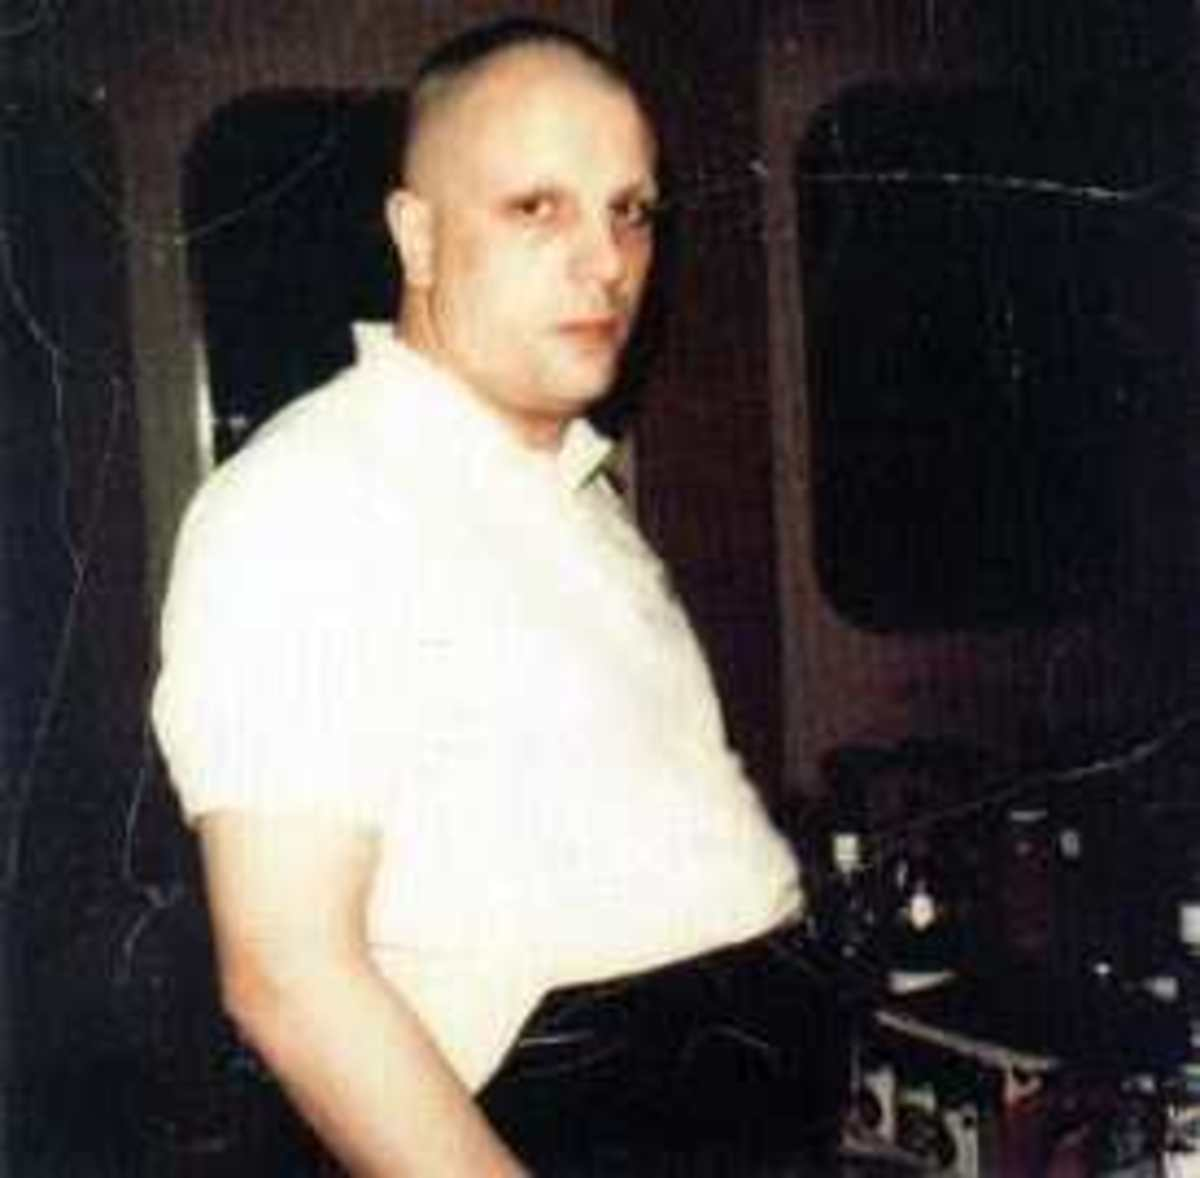 Syd Barrett, bald and stout, showed up at the Abbey Road Studios during the recording of Shine on You Crazy Diamond. He didn't have any idea that the song was being sung for him. Roger Waters broke down to tears when he recognized the bald man as Syd